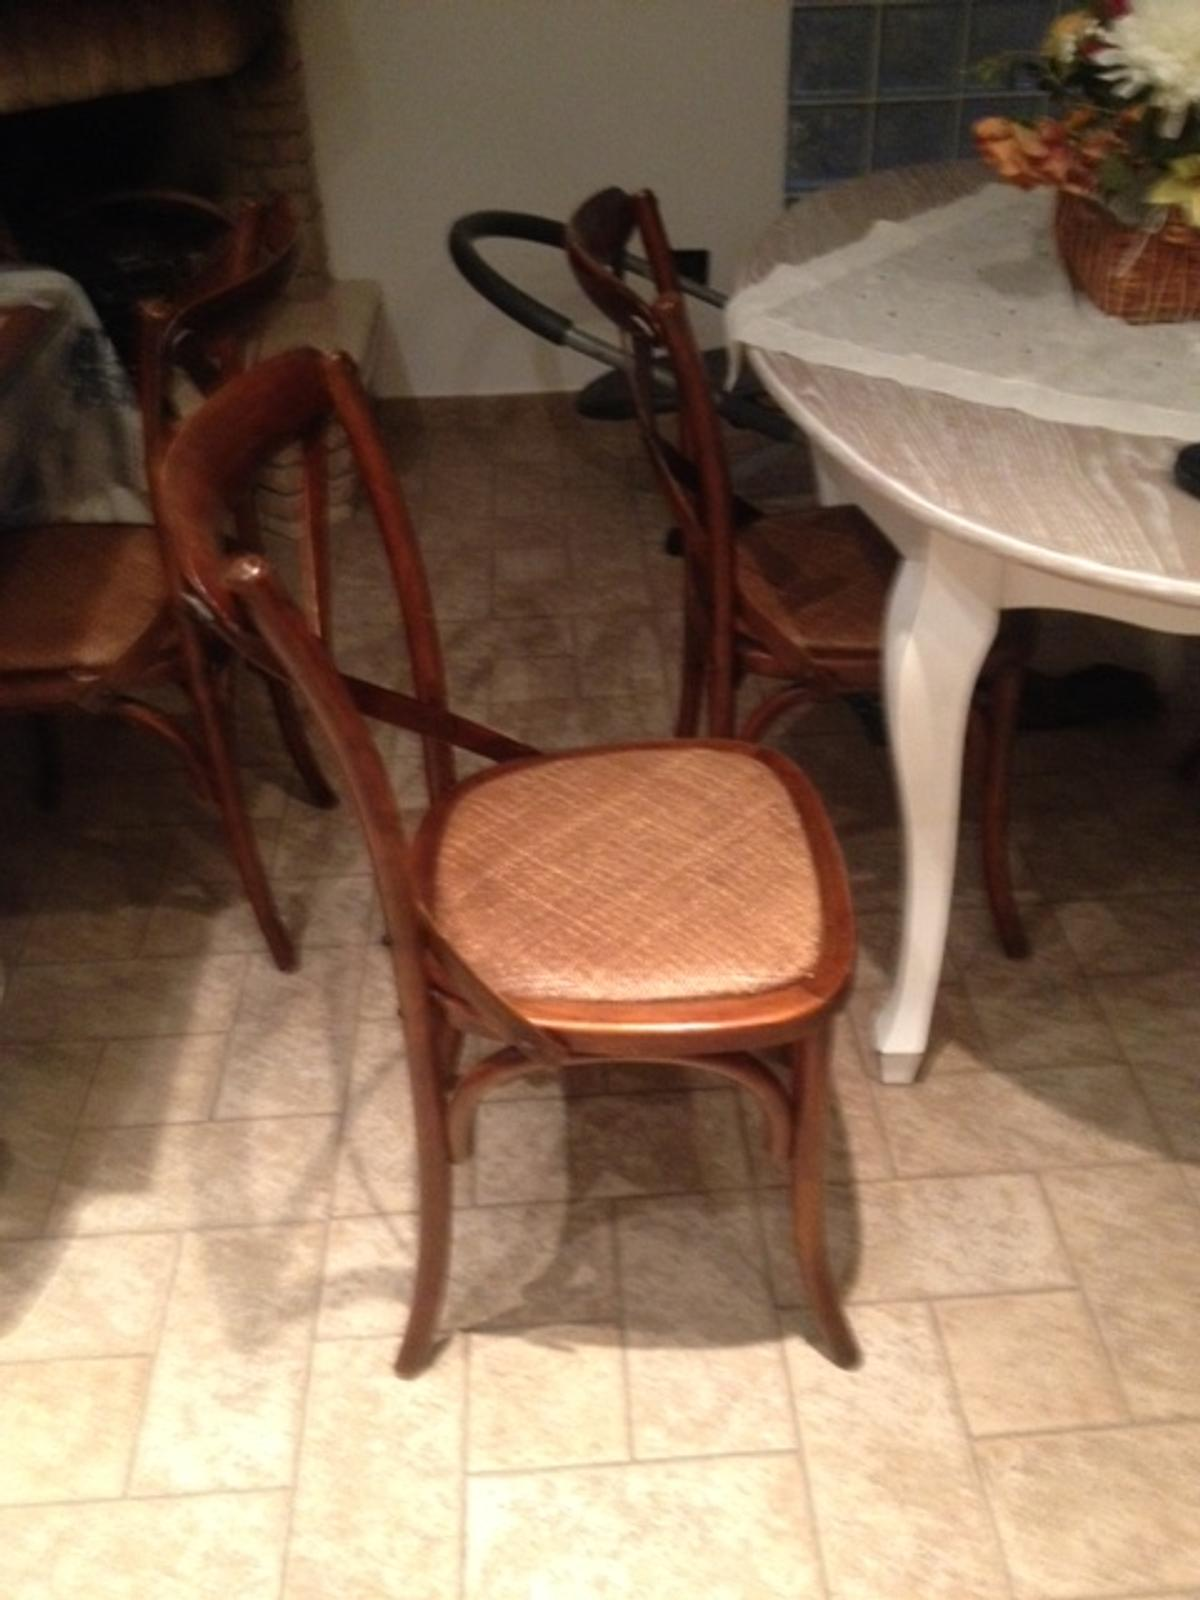 Sedie Tipo Thonet Usate.4 Sedie Thonet In 00139 Roma For 150 00 For Sale Shpock